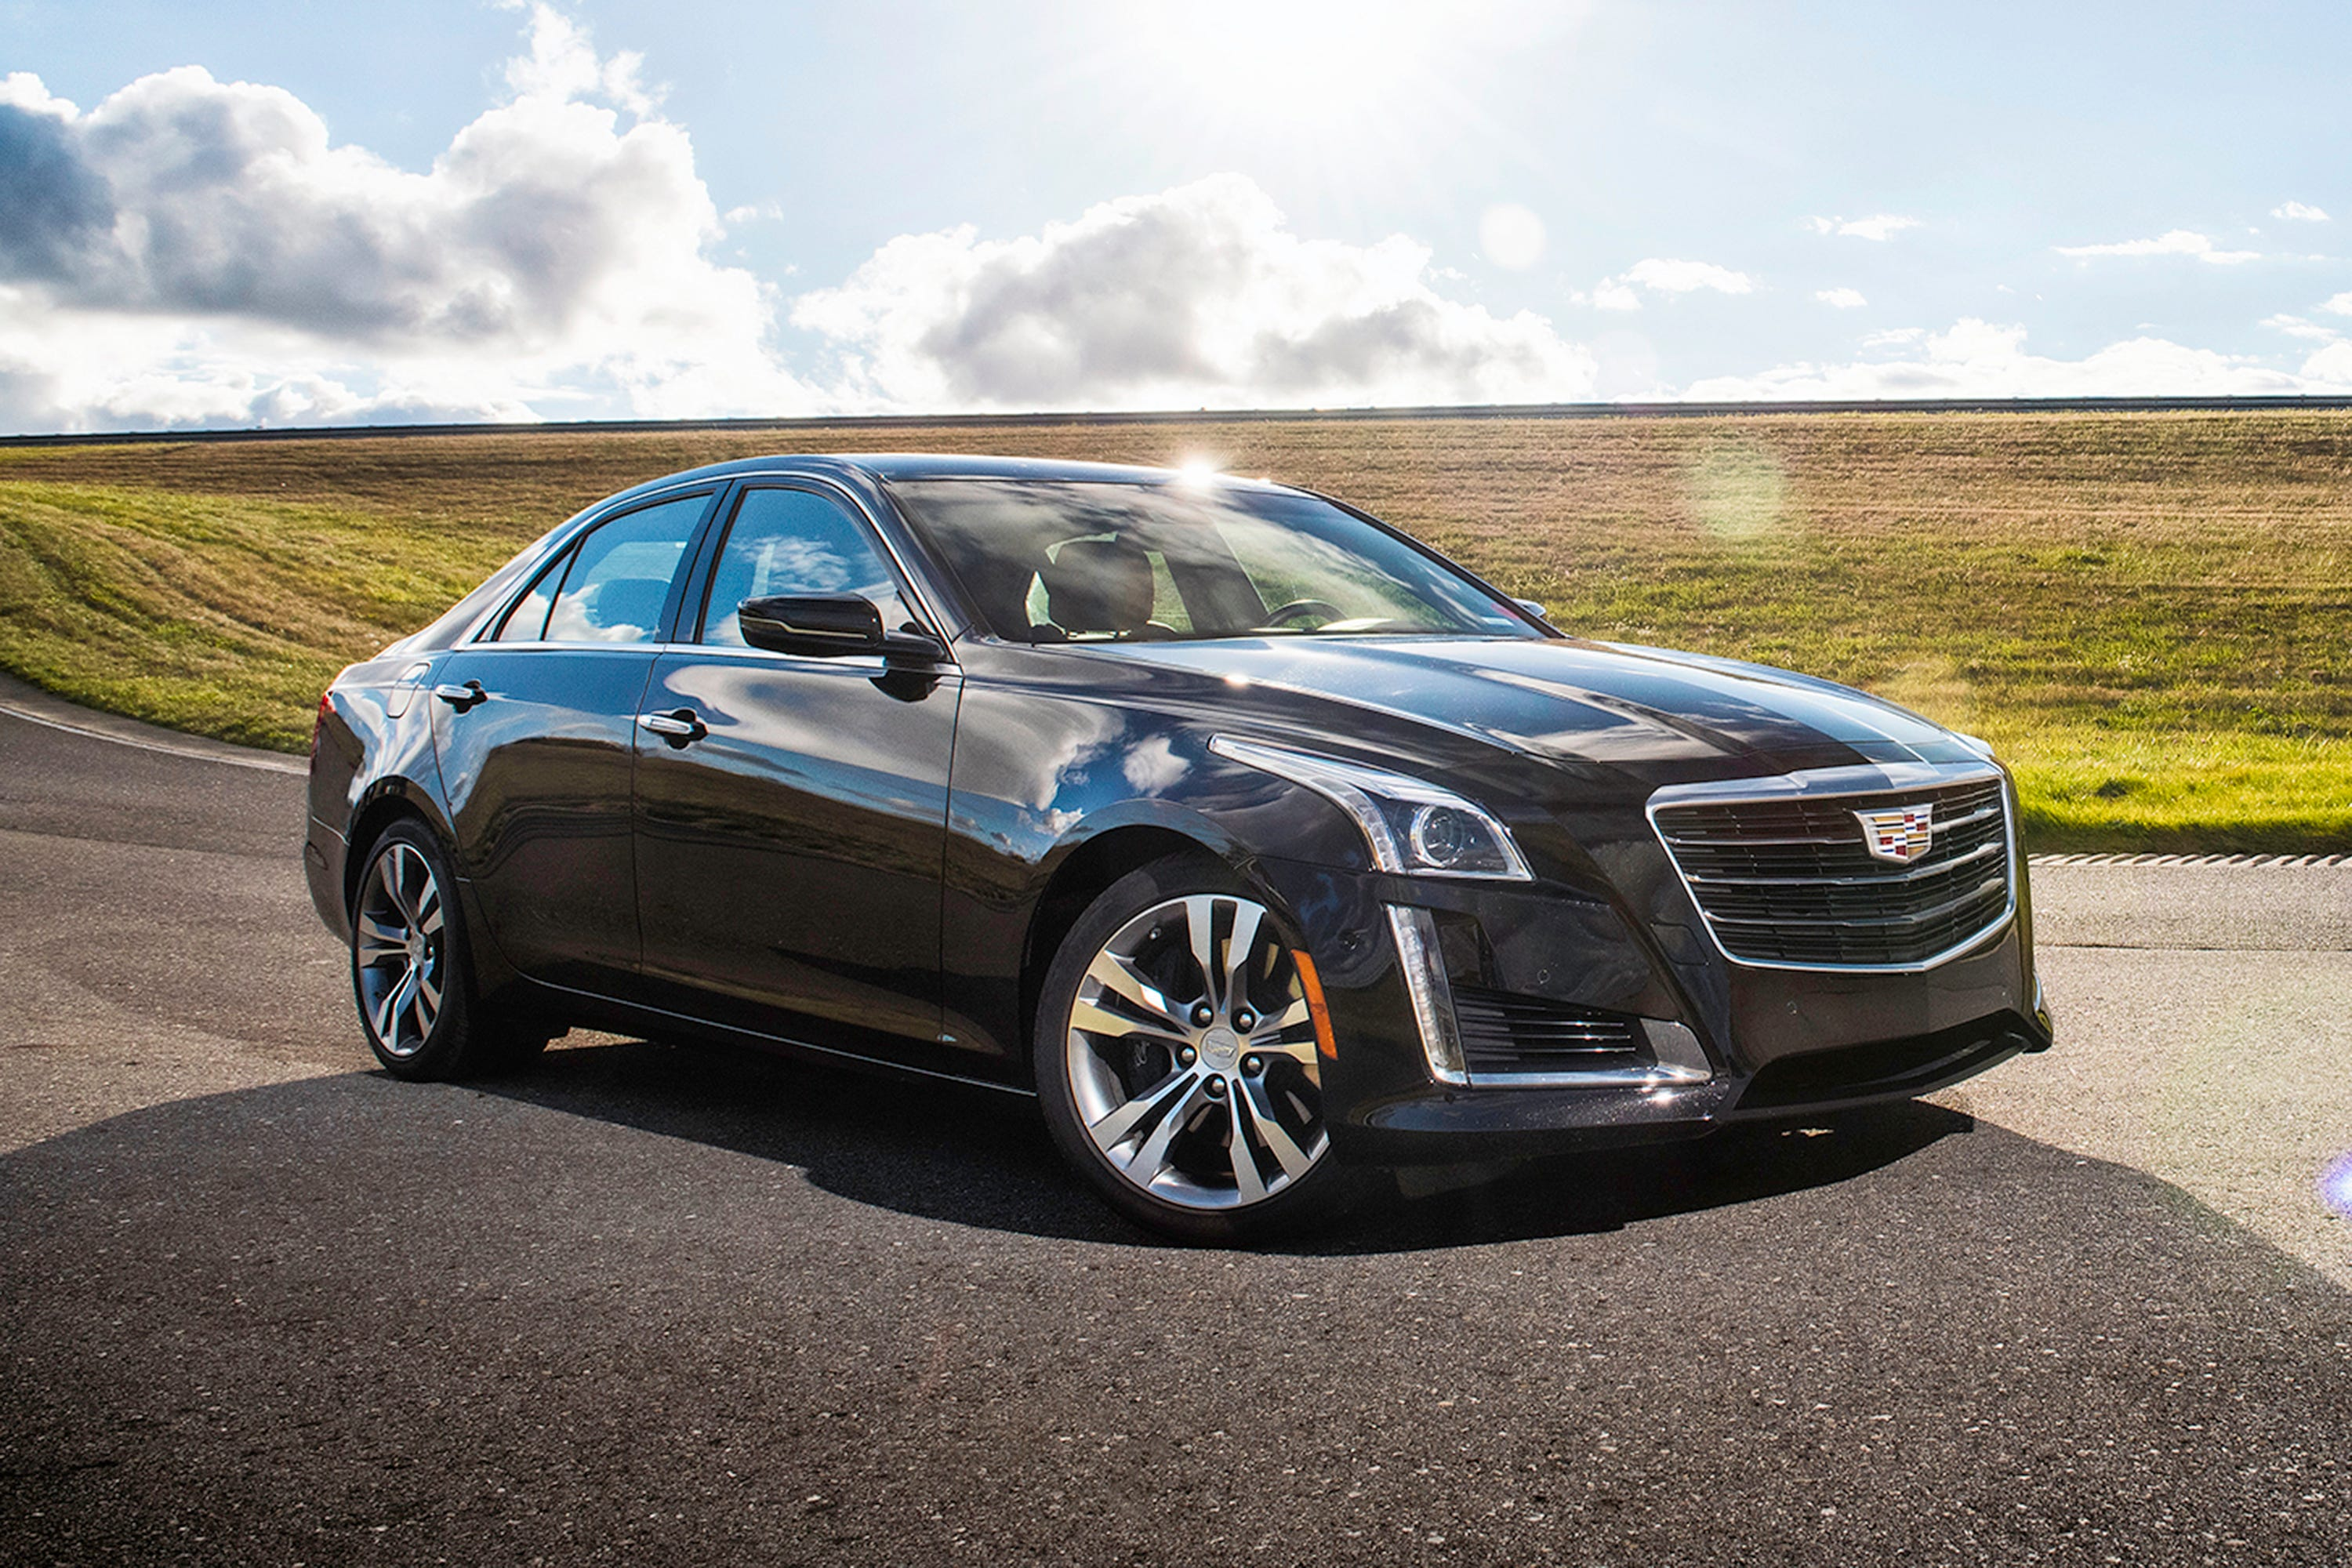 edmunds picks 6 used luxury vehicles under $36k that are as good as